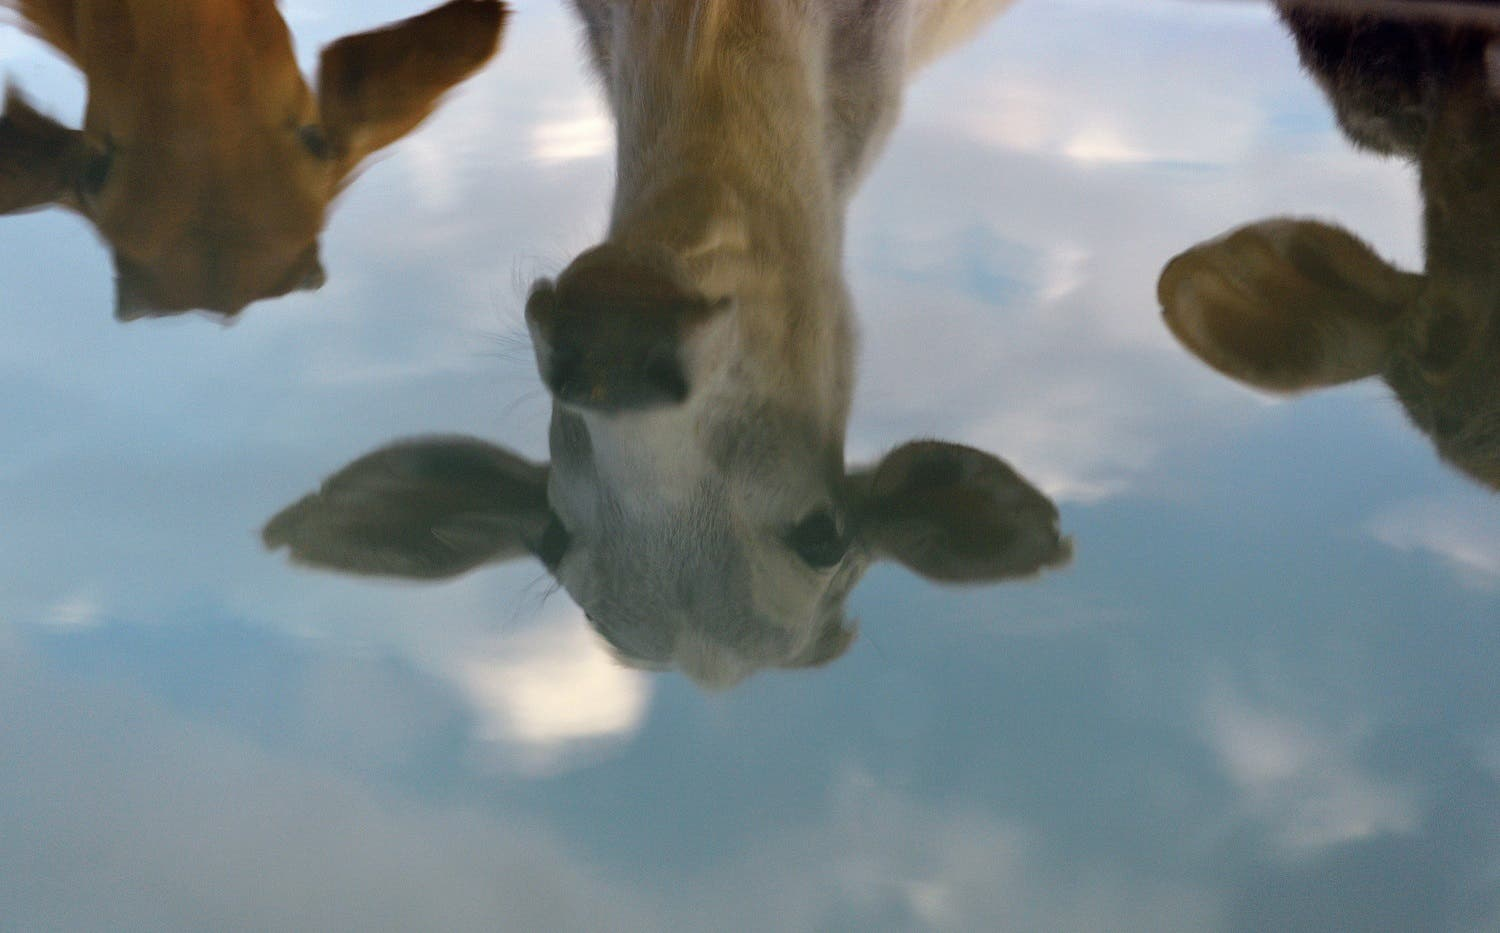 To go with India-politics-religion-beef,FOCUS by Abhaya SRIVASTAVA In this photograph taken on November 5, 2015, cows are reflected at a cow shelter owned by Babulal Jangir, a rustic self-styled leader of cow raiders, and Gau Raksha Dal (Cow Protection Squad) in Taranagar in the desert state of Rajasthan. Cow slaughter and consumption of beef are banned in Rajasthan and many other states of officially secular India which has substantial Muslim and Christian populations, and almost every night a vigilante squad lie in wait for suspected cattle smugglers, in a bid to enforce the ban. AFP PHOTO/CHANDAN KHANNA  Chandan Khanna / AFP